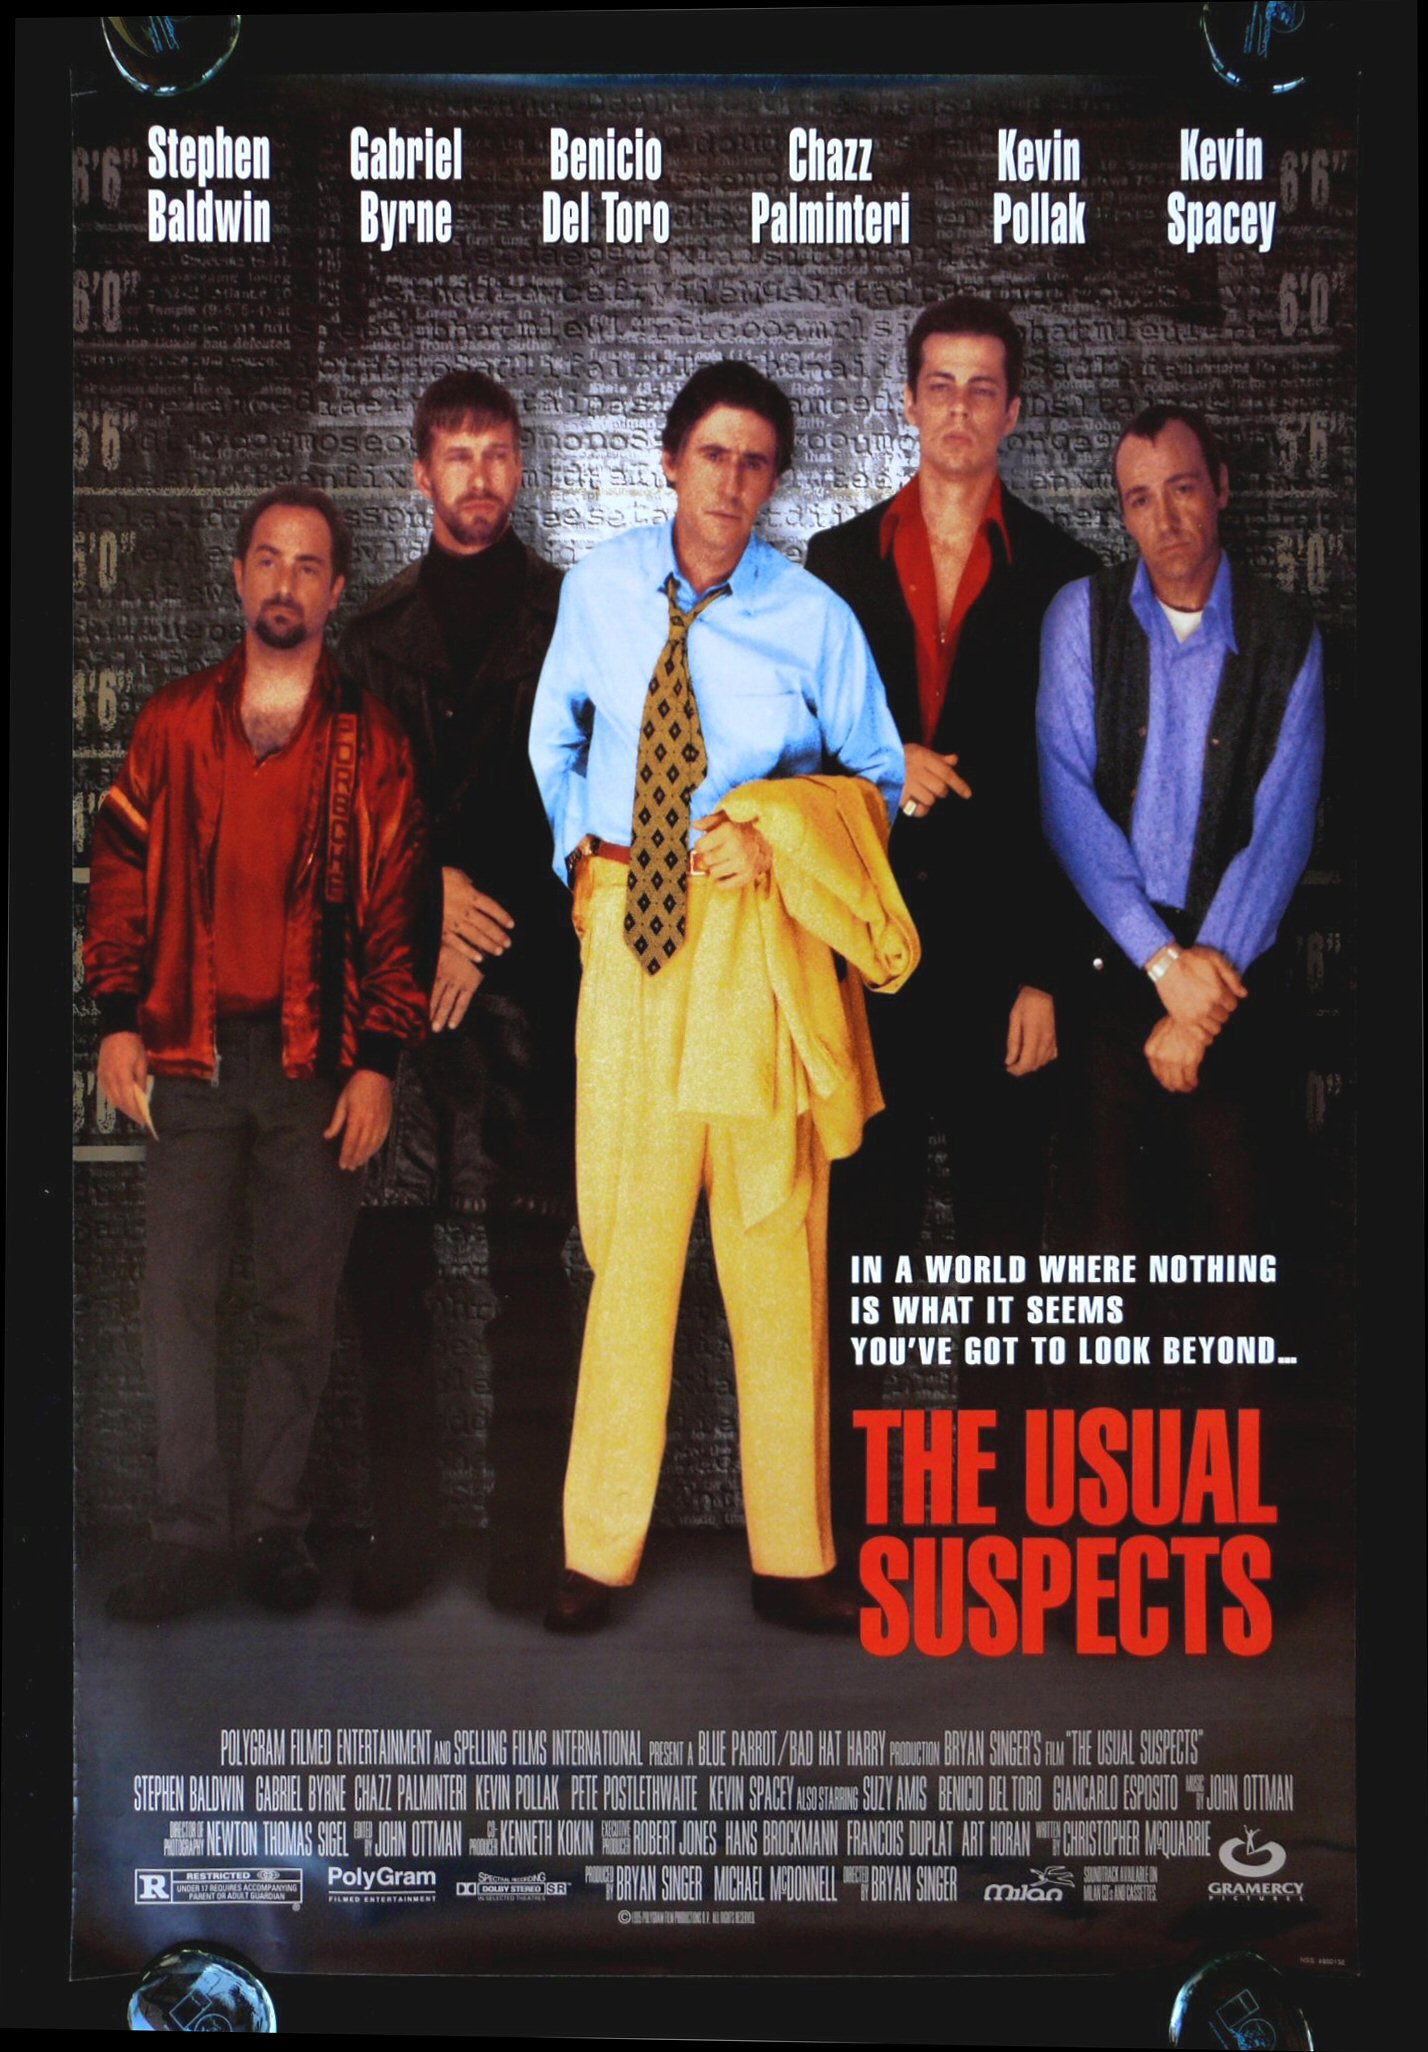 Unforgiven Underworld Usual Suspects Movie Posters